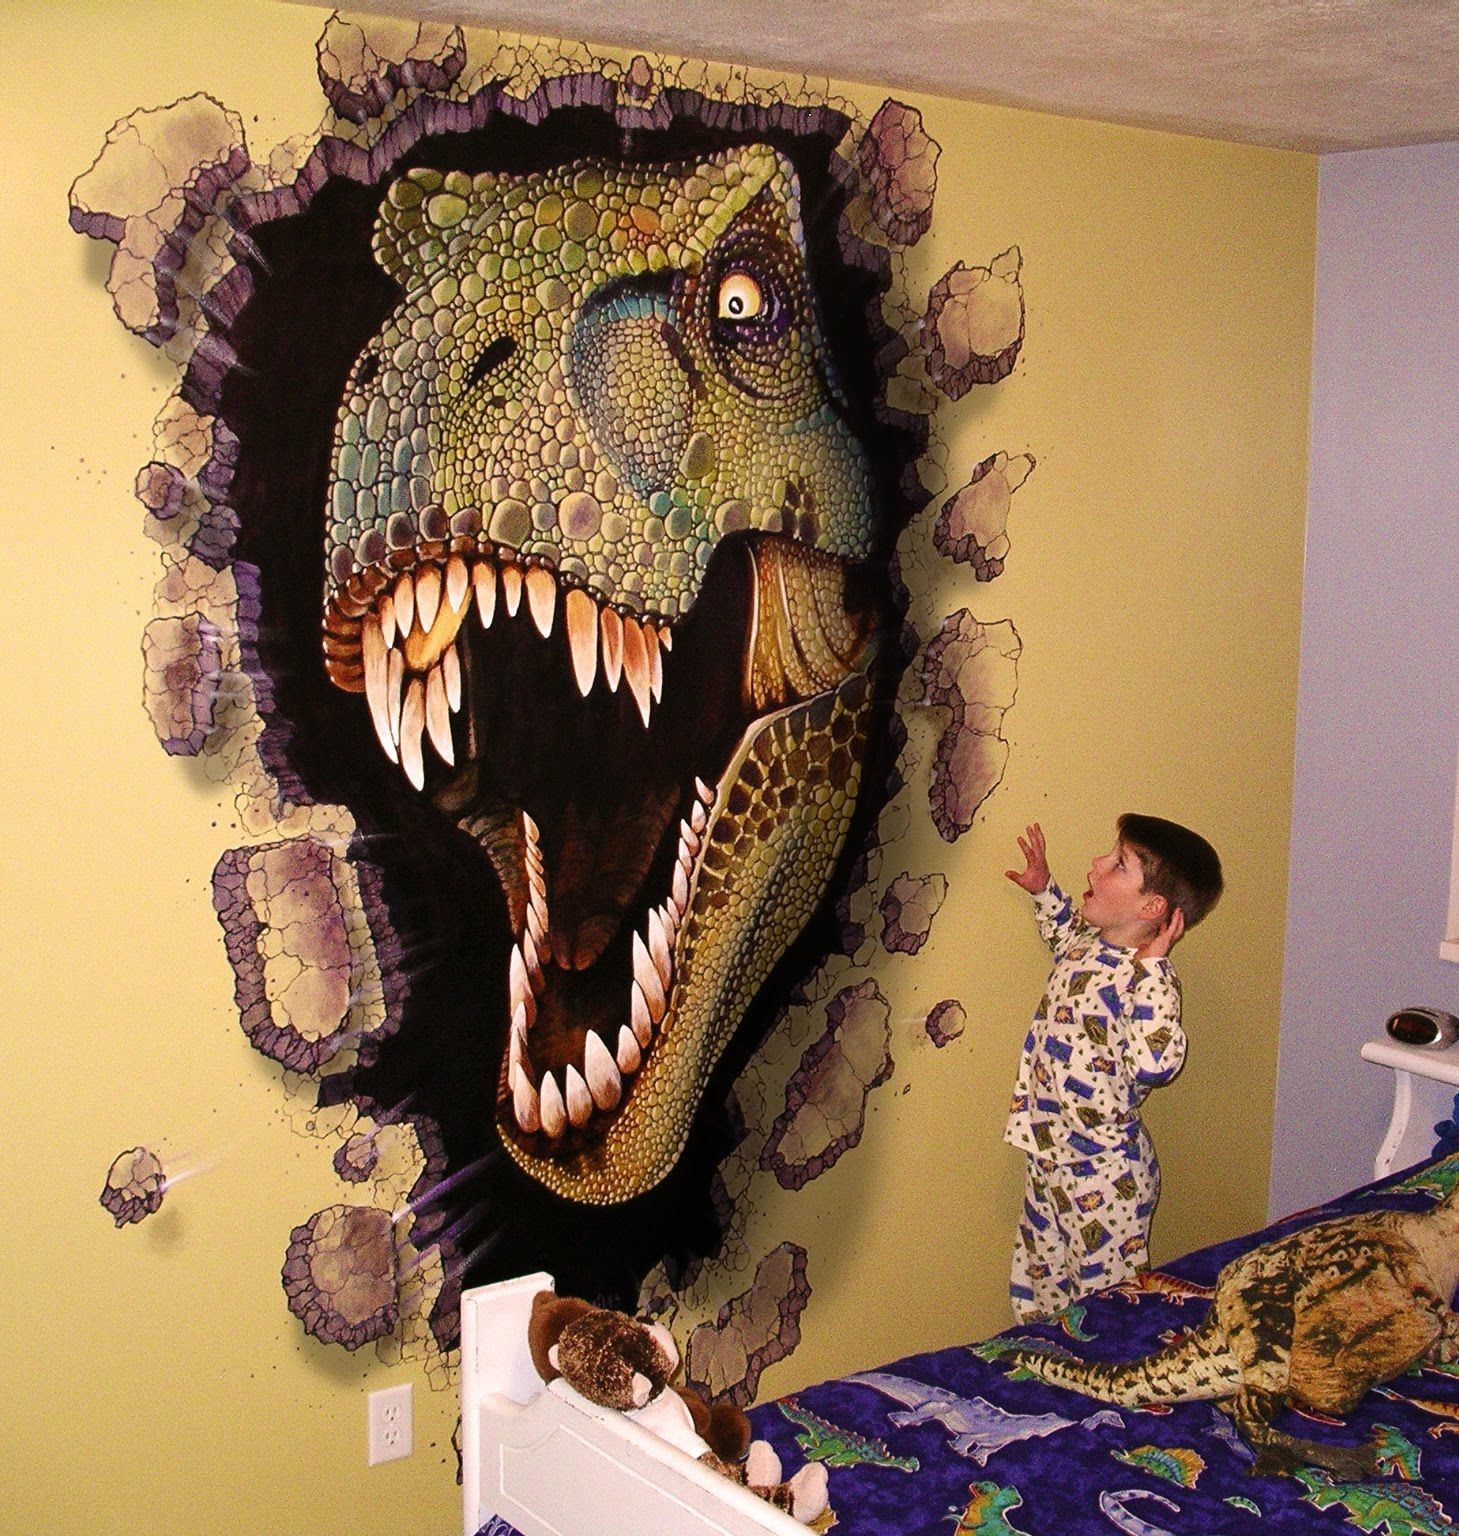 Boys dinosaur room miles woods art wall murals jrs room boys dinosaur room miles woods art wall murals amipublicfo Image collections